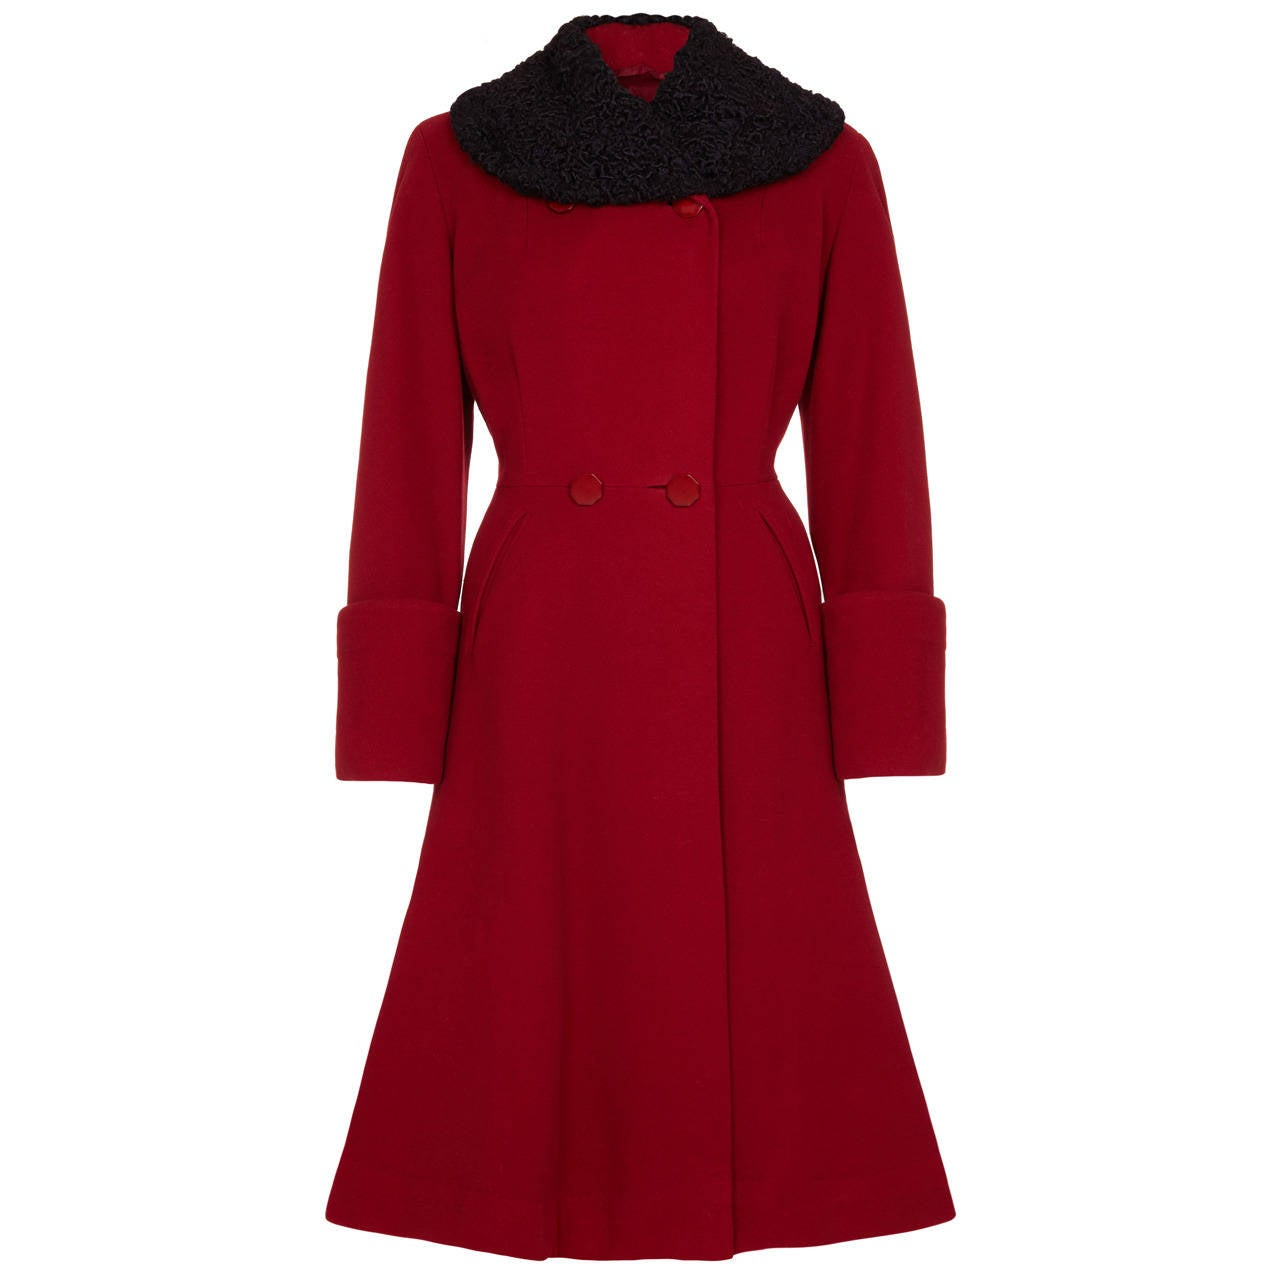 1940s Red Wool Coat 1